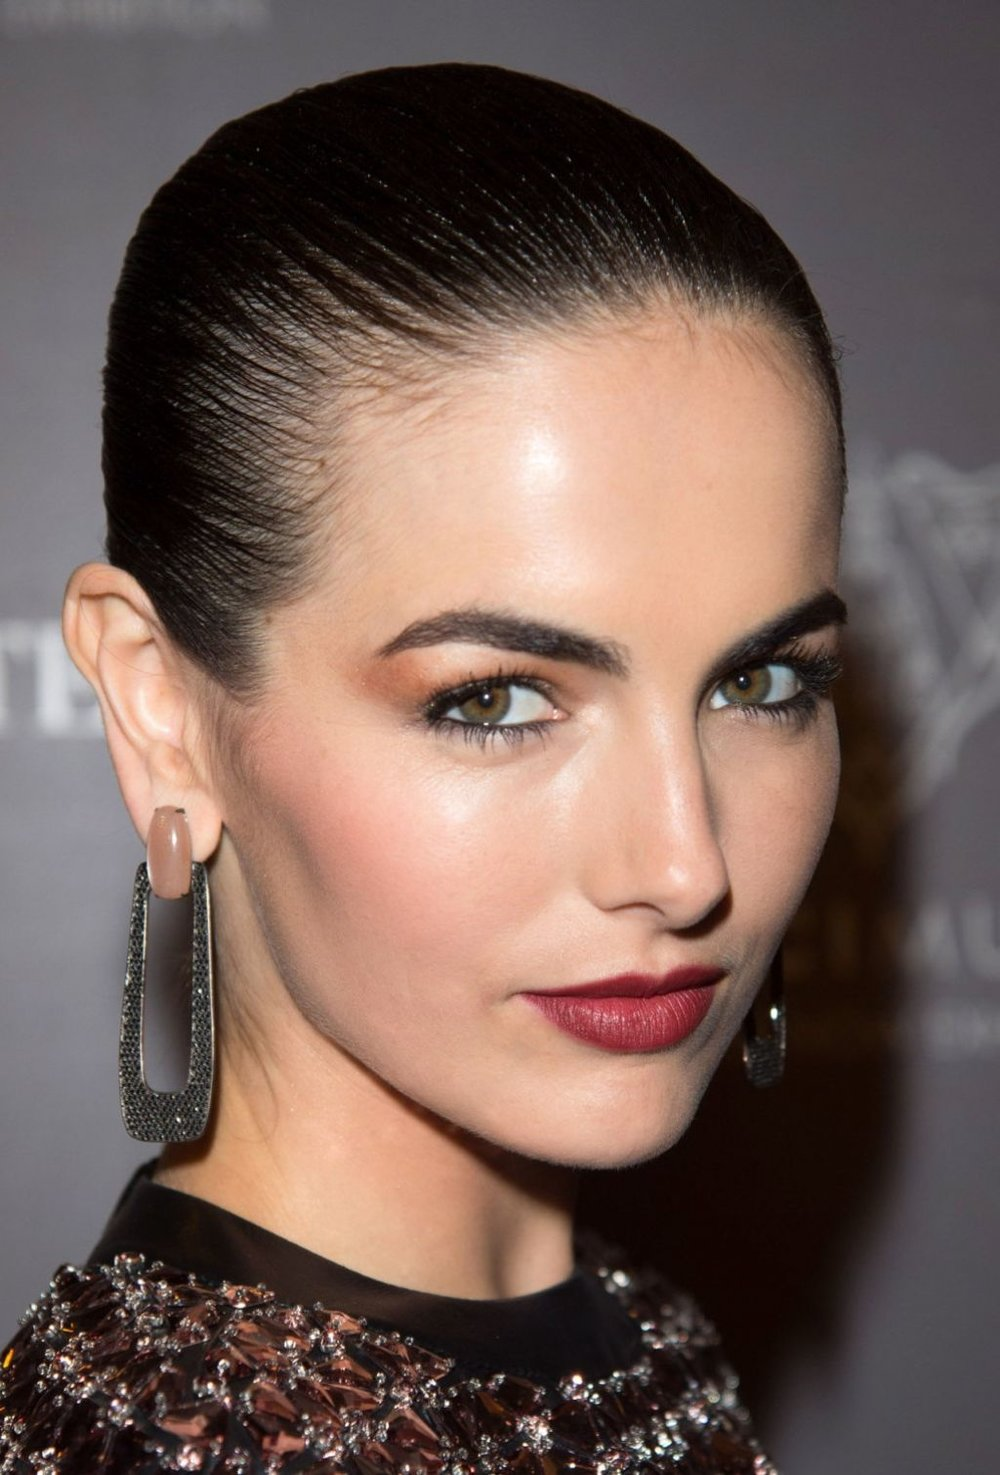 hair-makeup-camillabelle-brun-updo-sleek-earrings-eyeshadow-lips.jpg